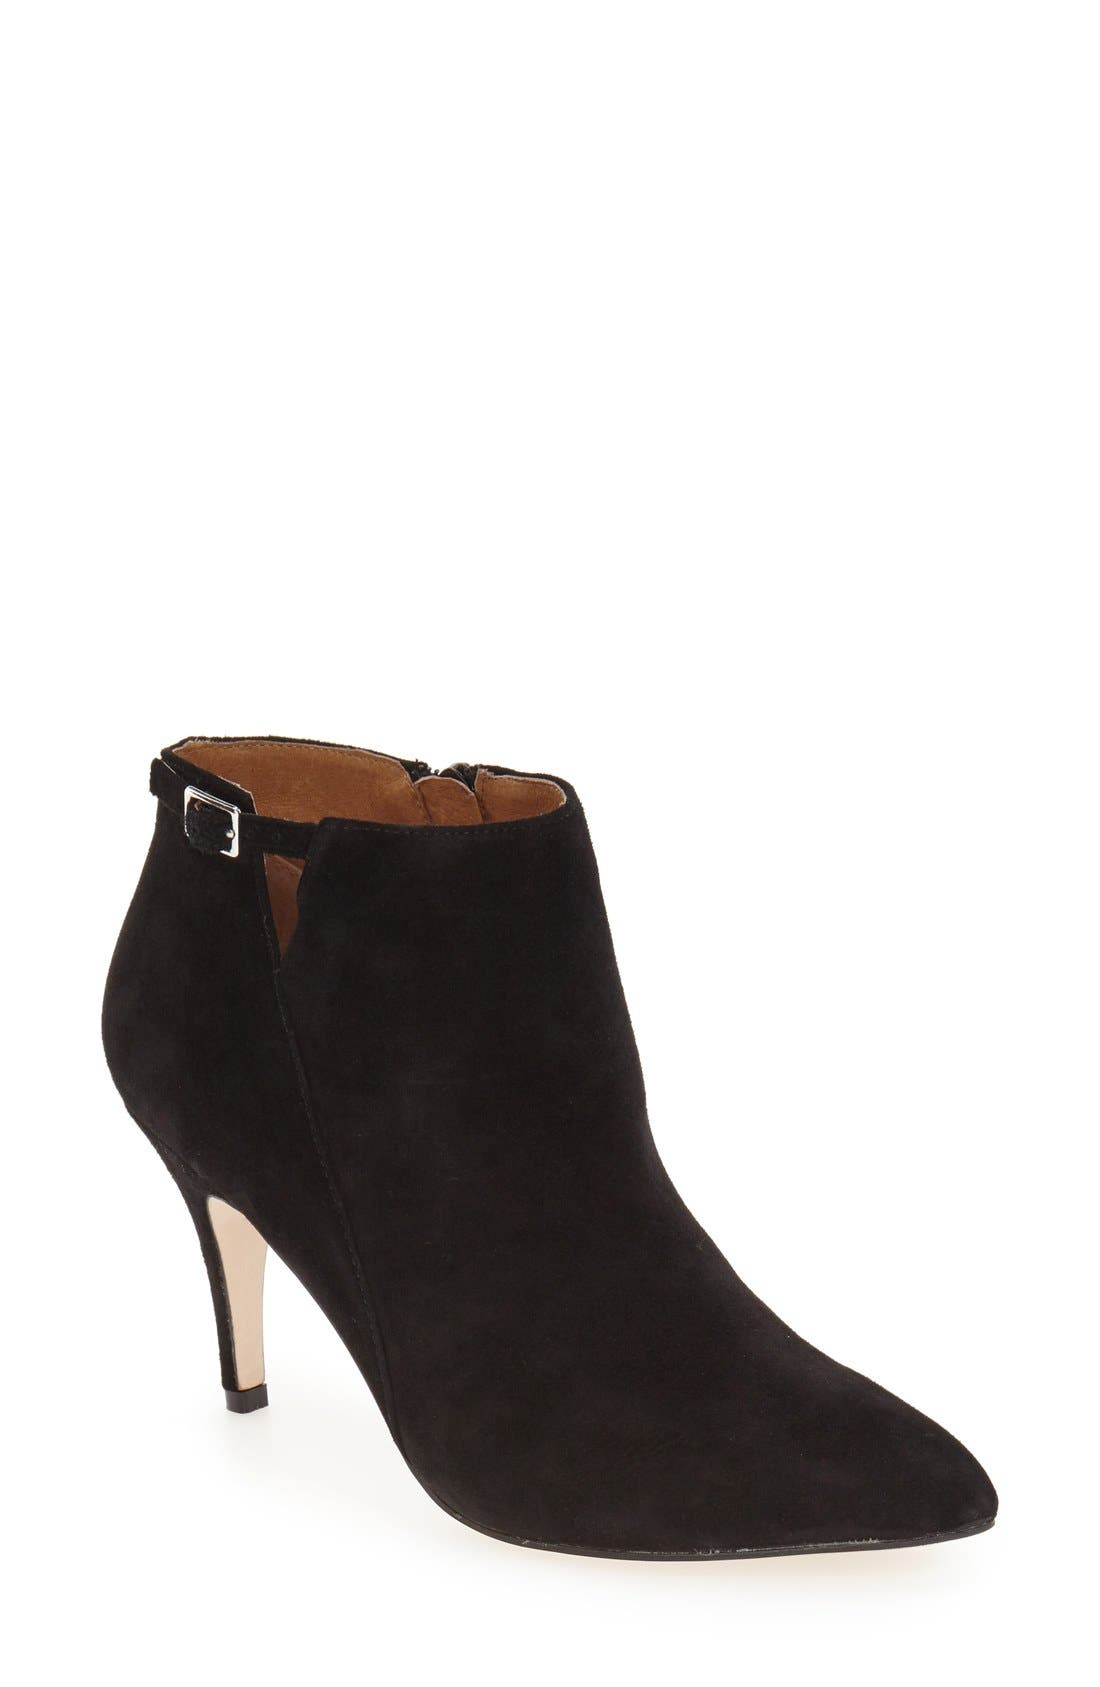 Alternate Image 1 Selected - Corso Como 'Roster' Pointy Toe Bootie (Women)